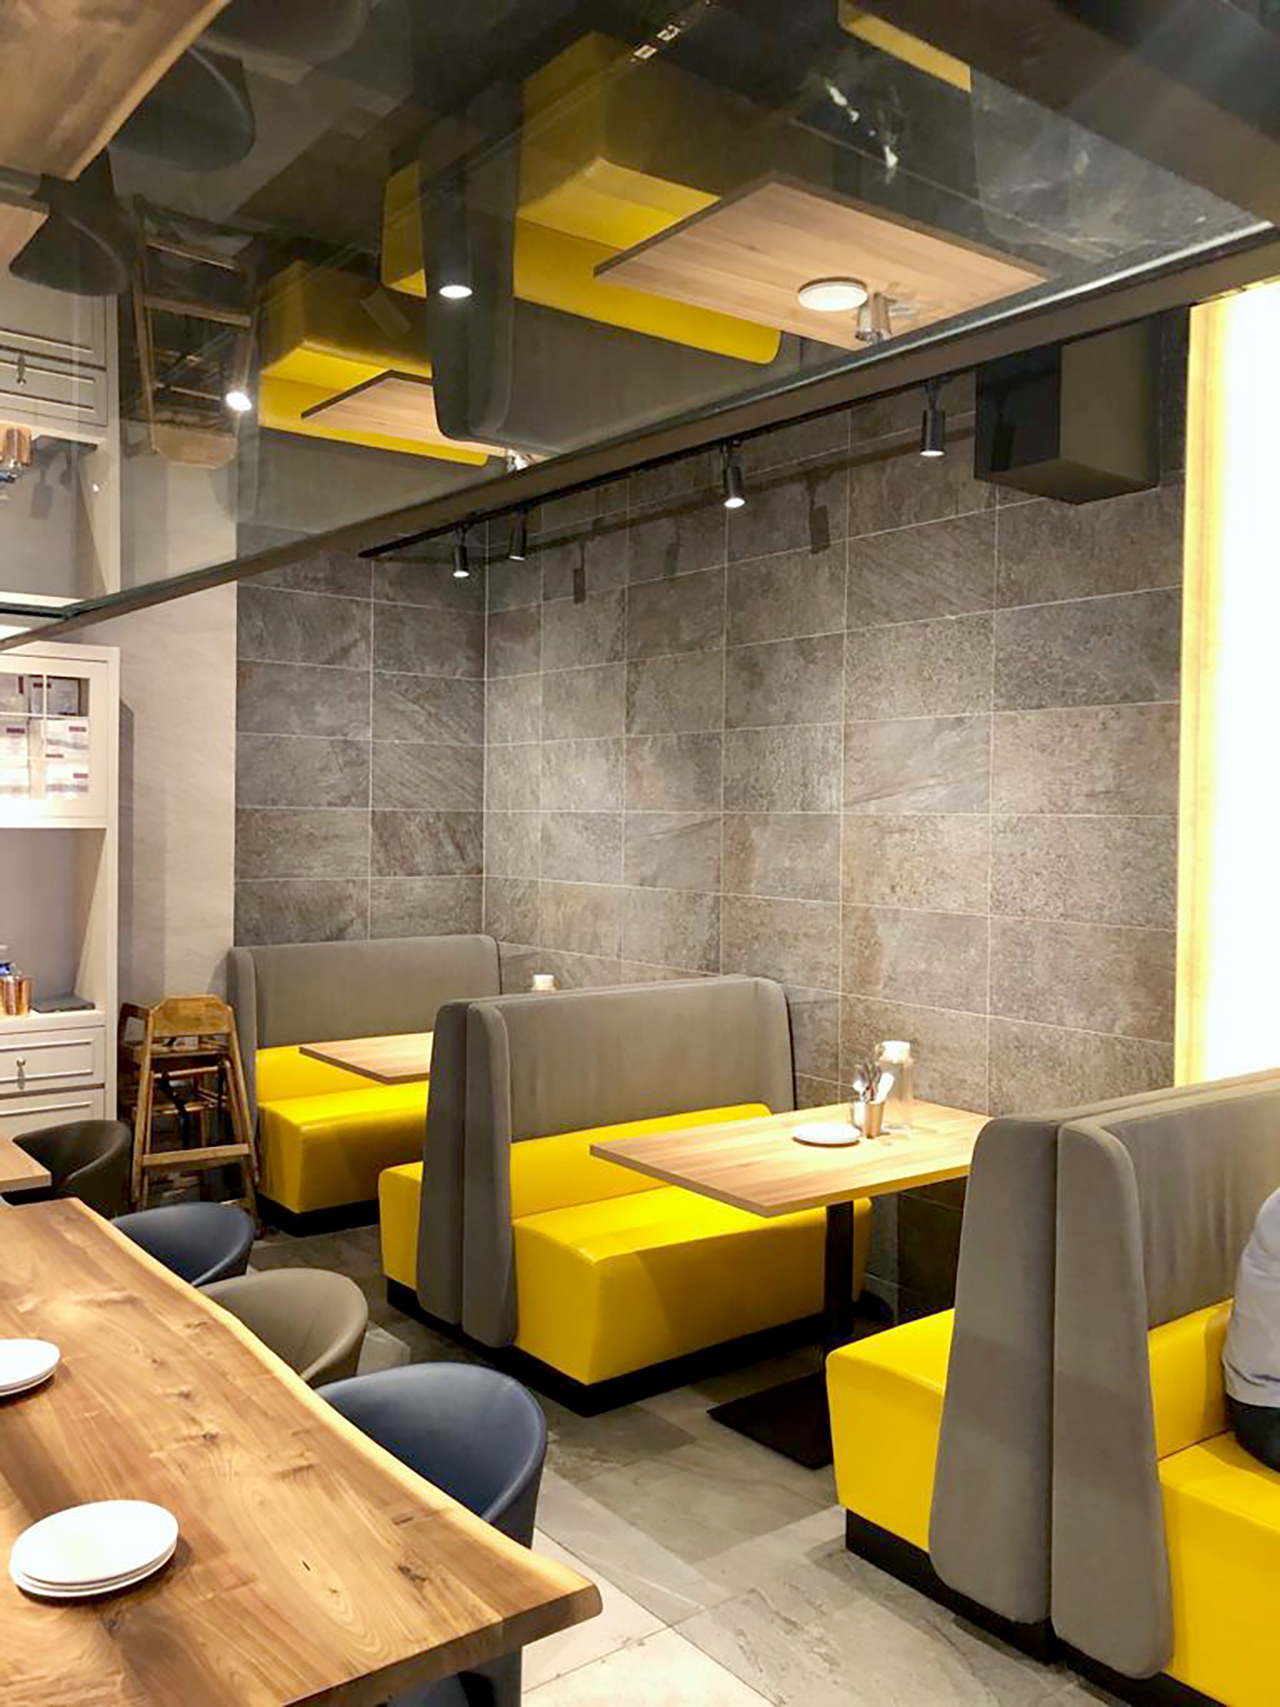 Kailash Parbat Restaurant - Syed Alwi Road | Product Seen: [Chaos 3–Seater Sofa – Highback & Customised Laminated Tabletop With ABS Edging + Pyram Table base]